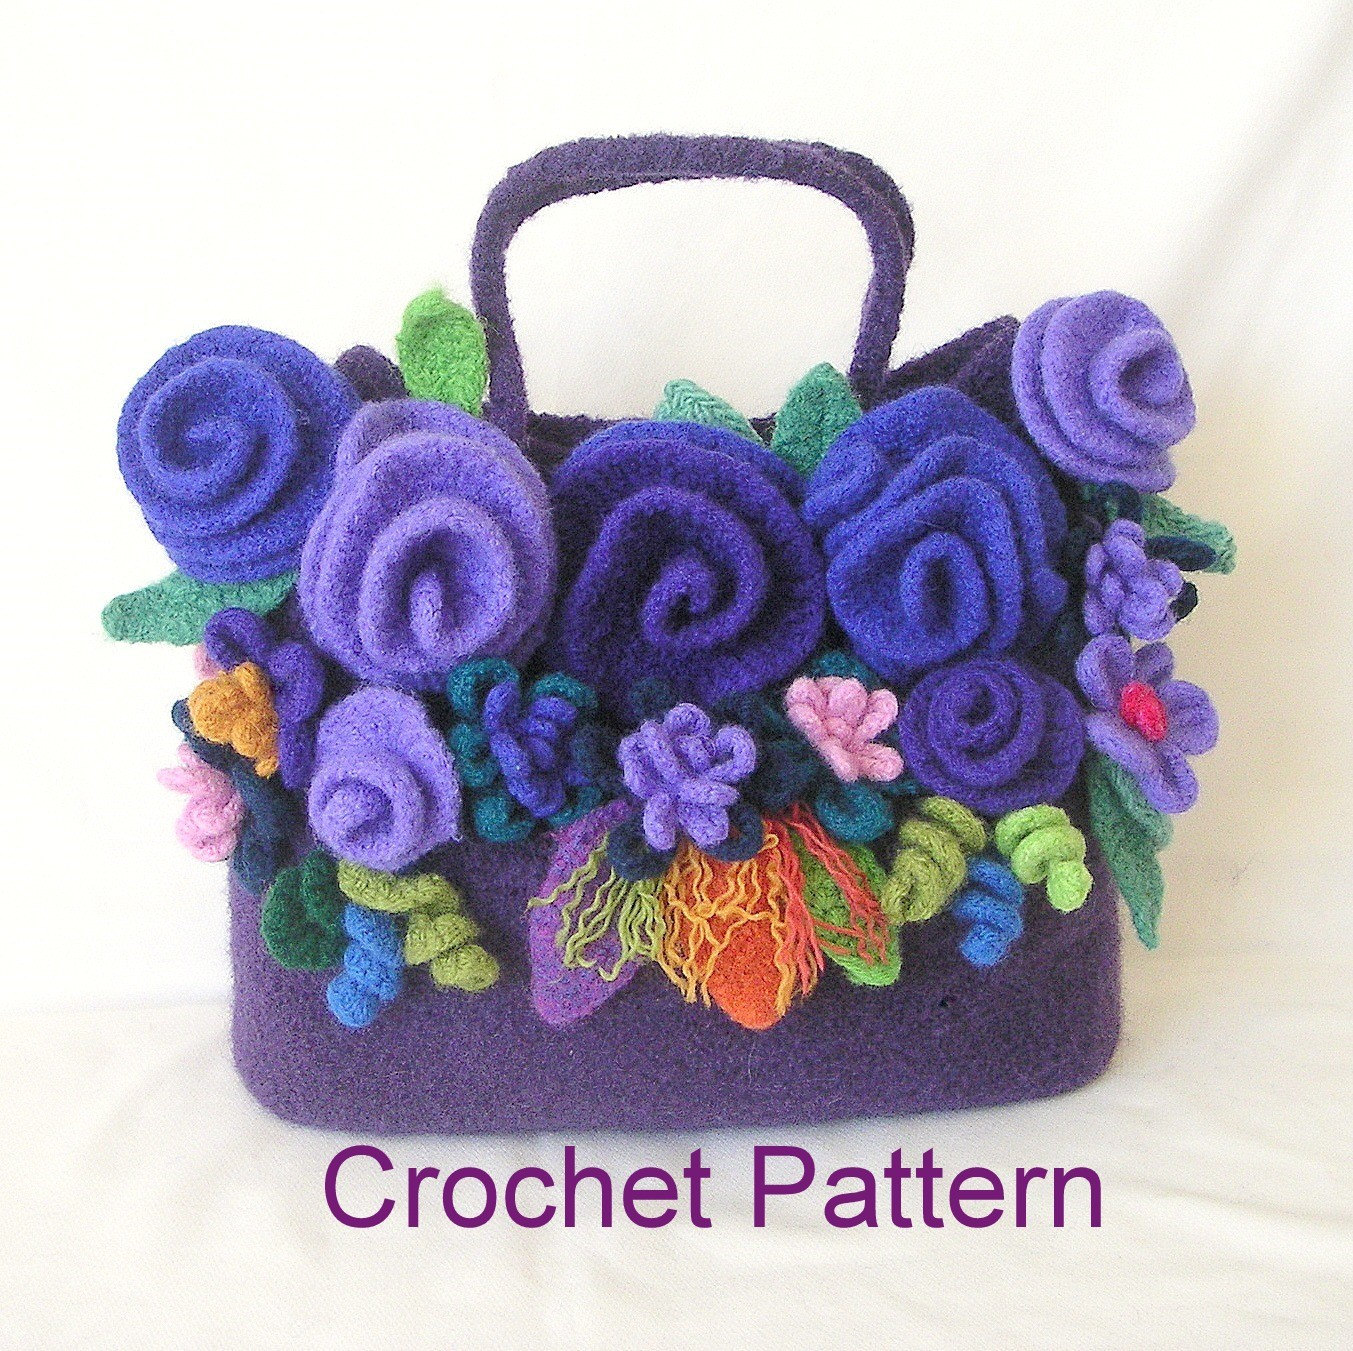 Crochet Purses And Bags Tutorials : Crochet Flower Bag Pattern Tutorial pdf Crochet Felted by GraceG2